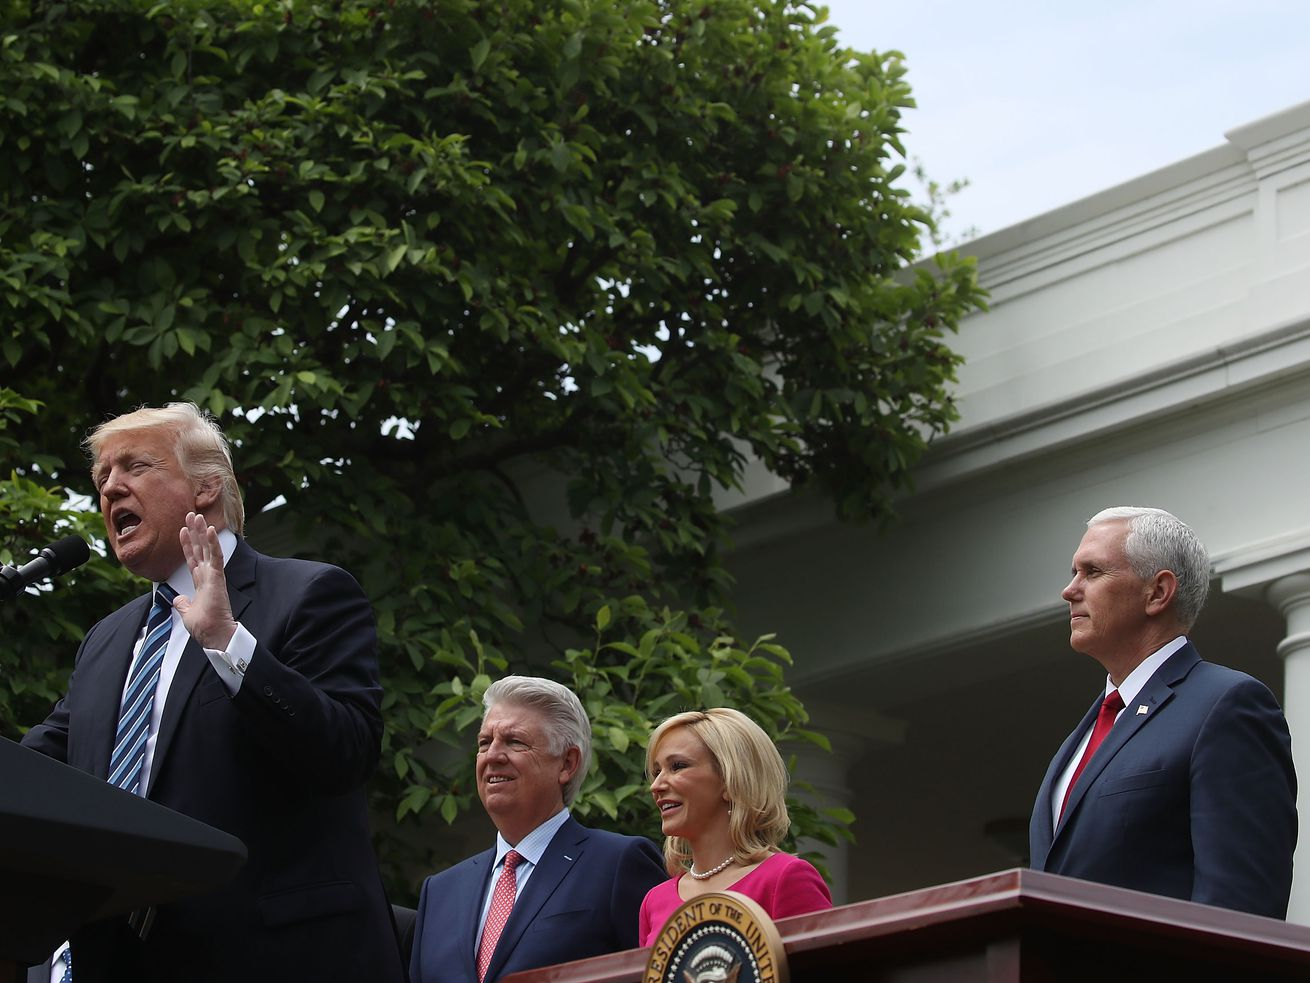 Trump on last year's National Day of Prayer.